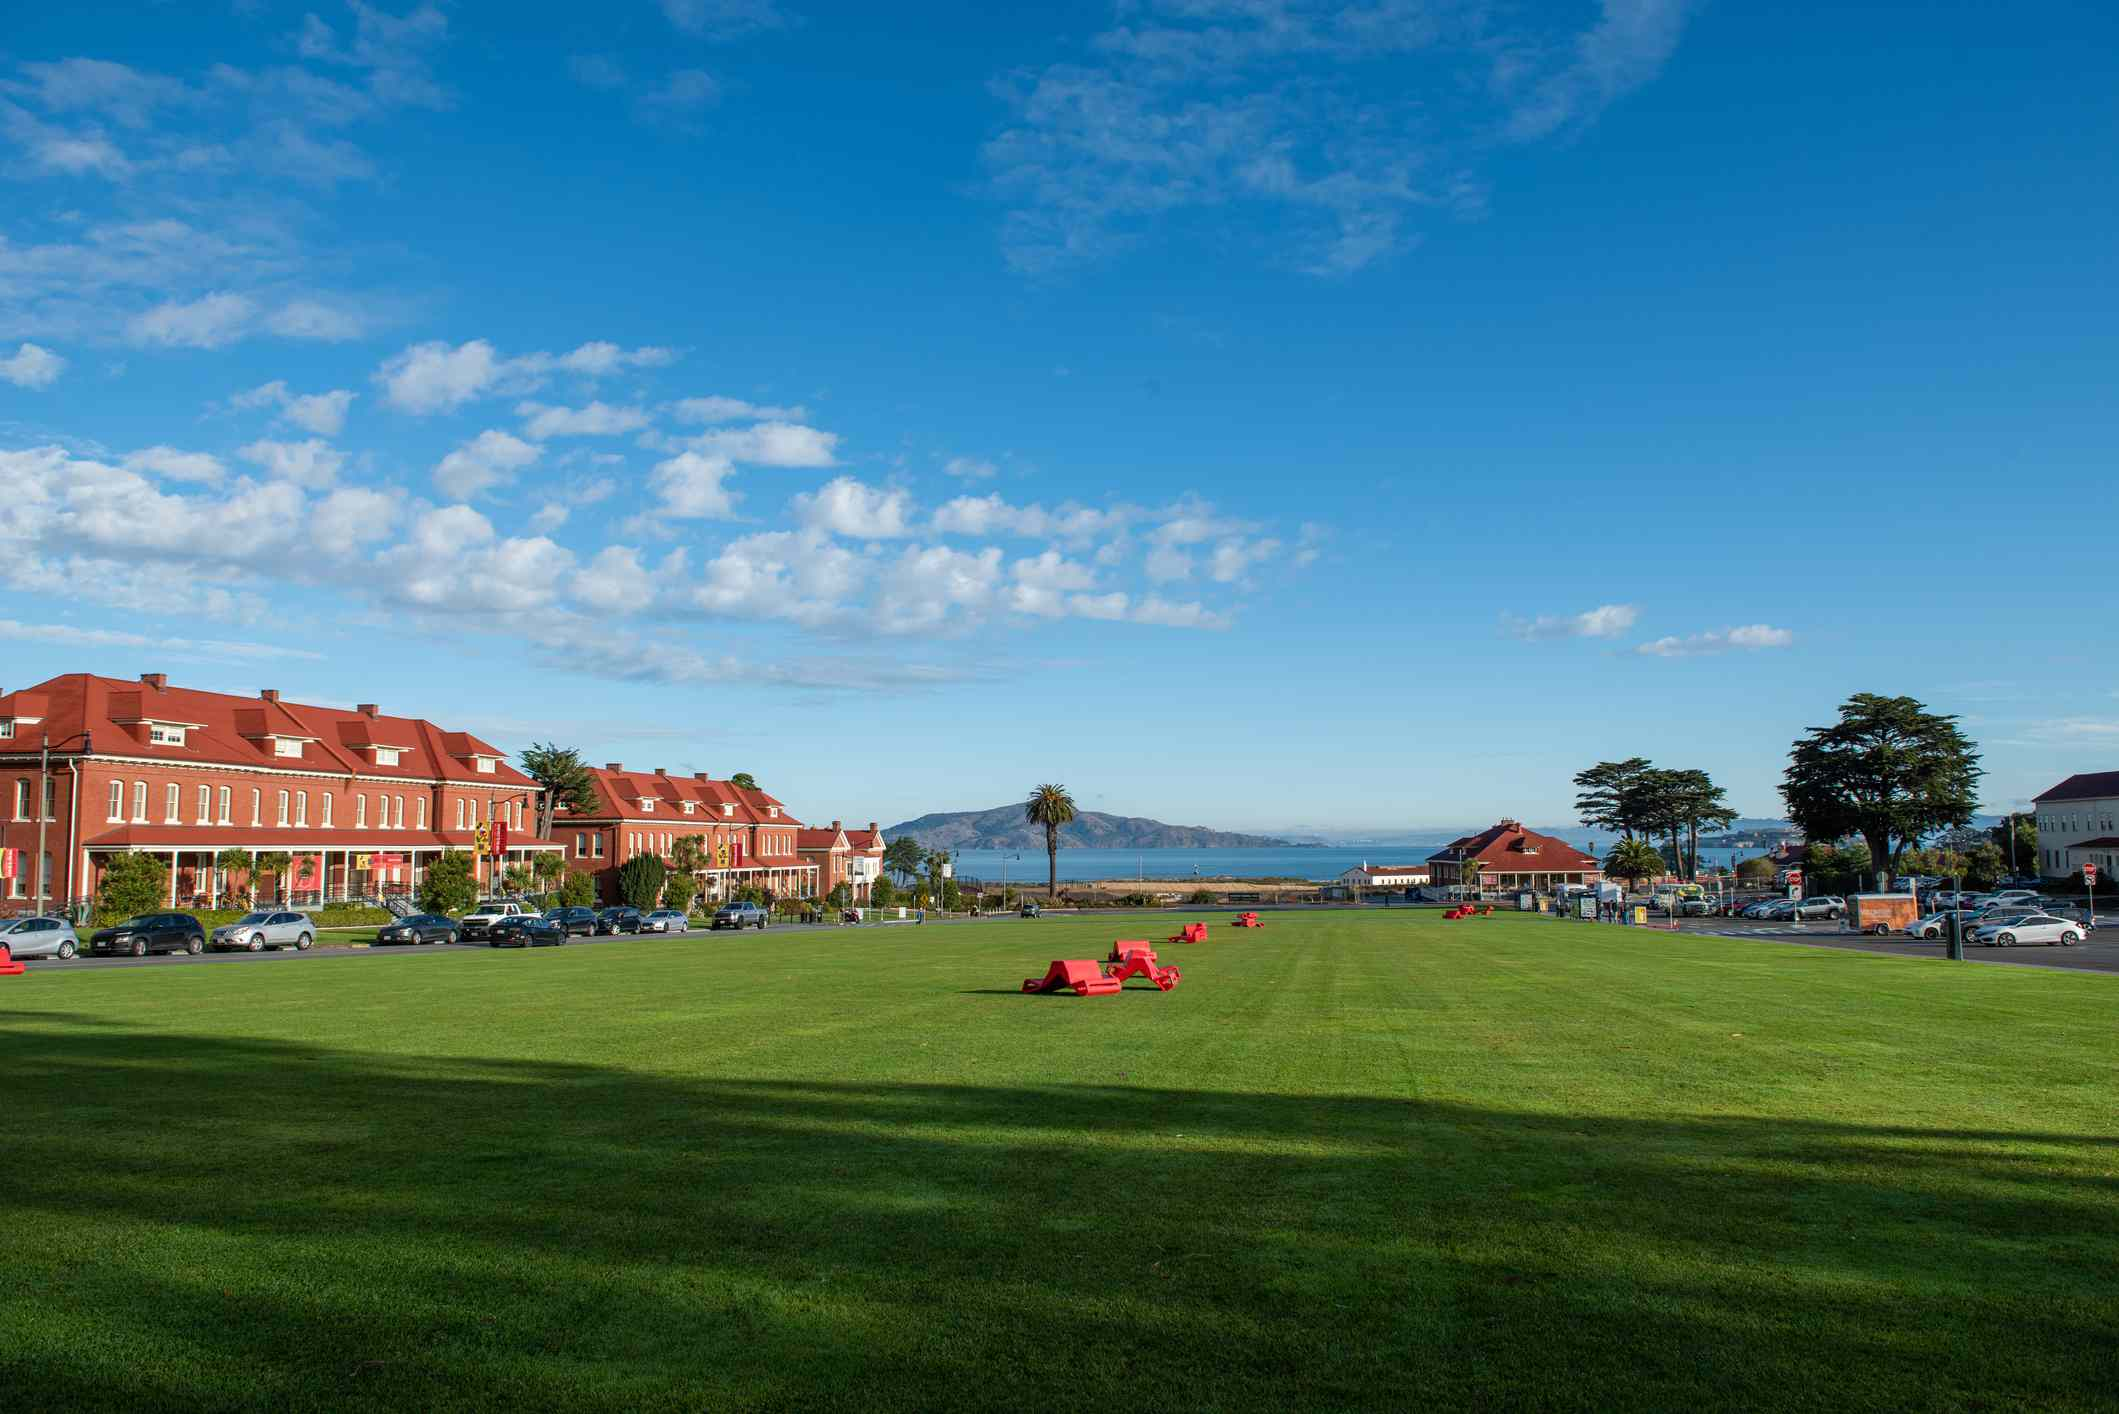 The grounds outside the Walt Disney Museum in San Francisco